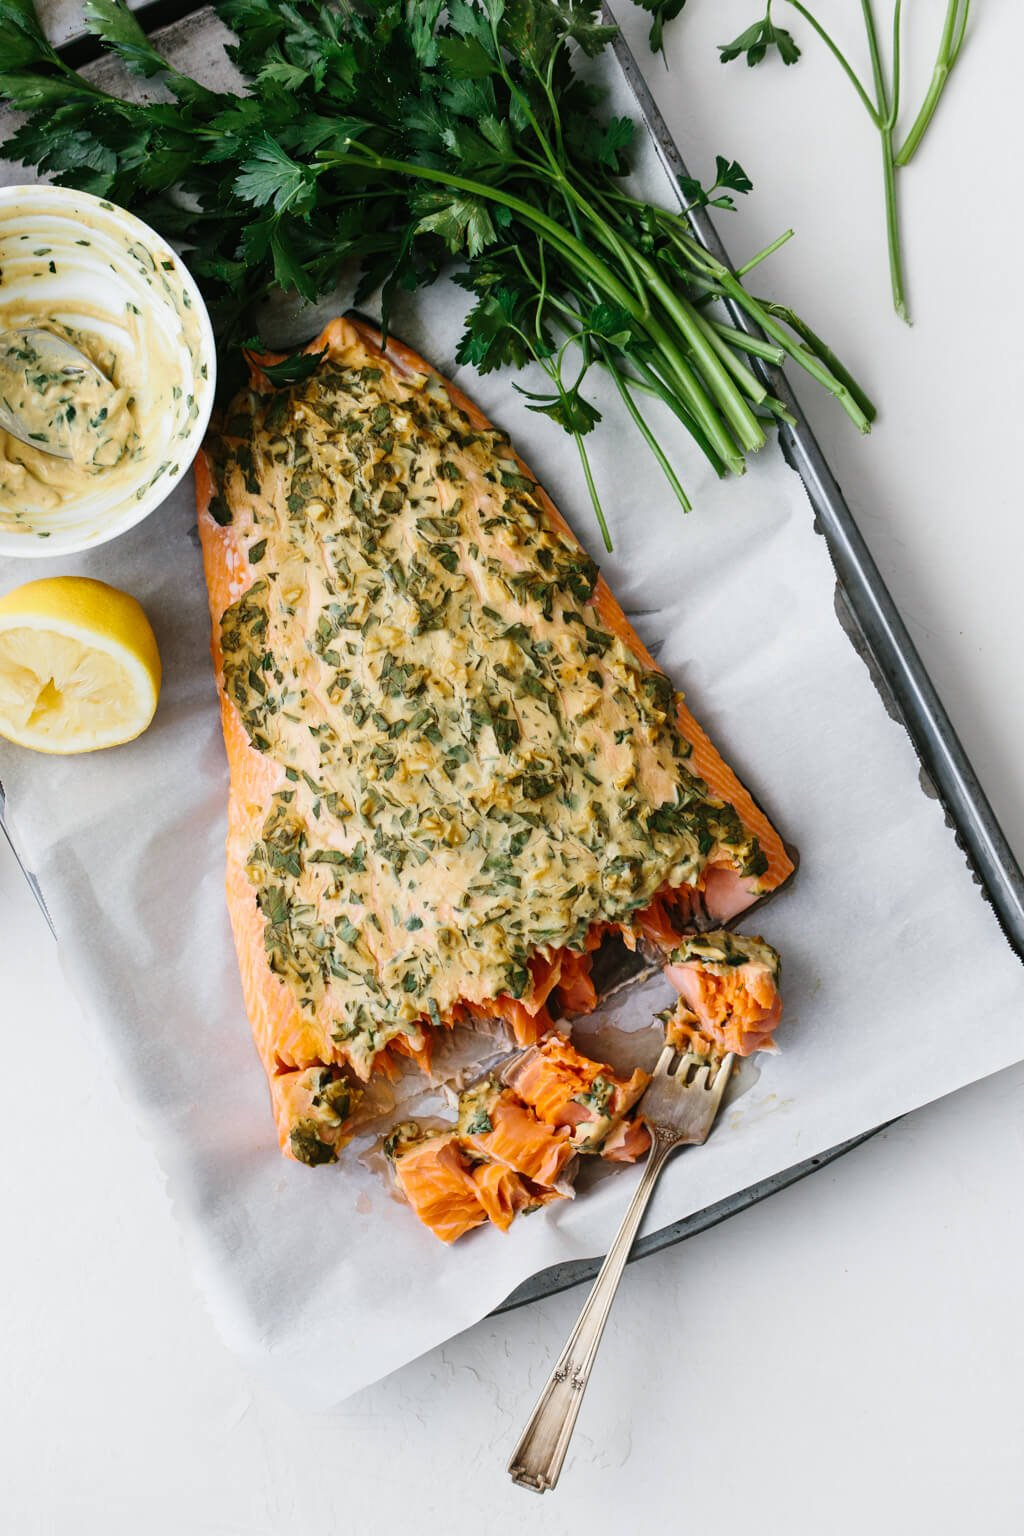 Dijon baked salmon on a baking sheet.